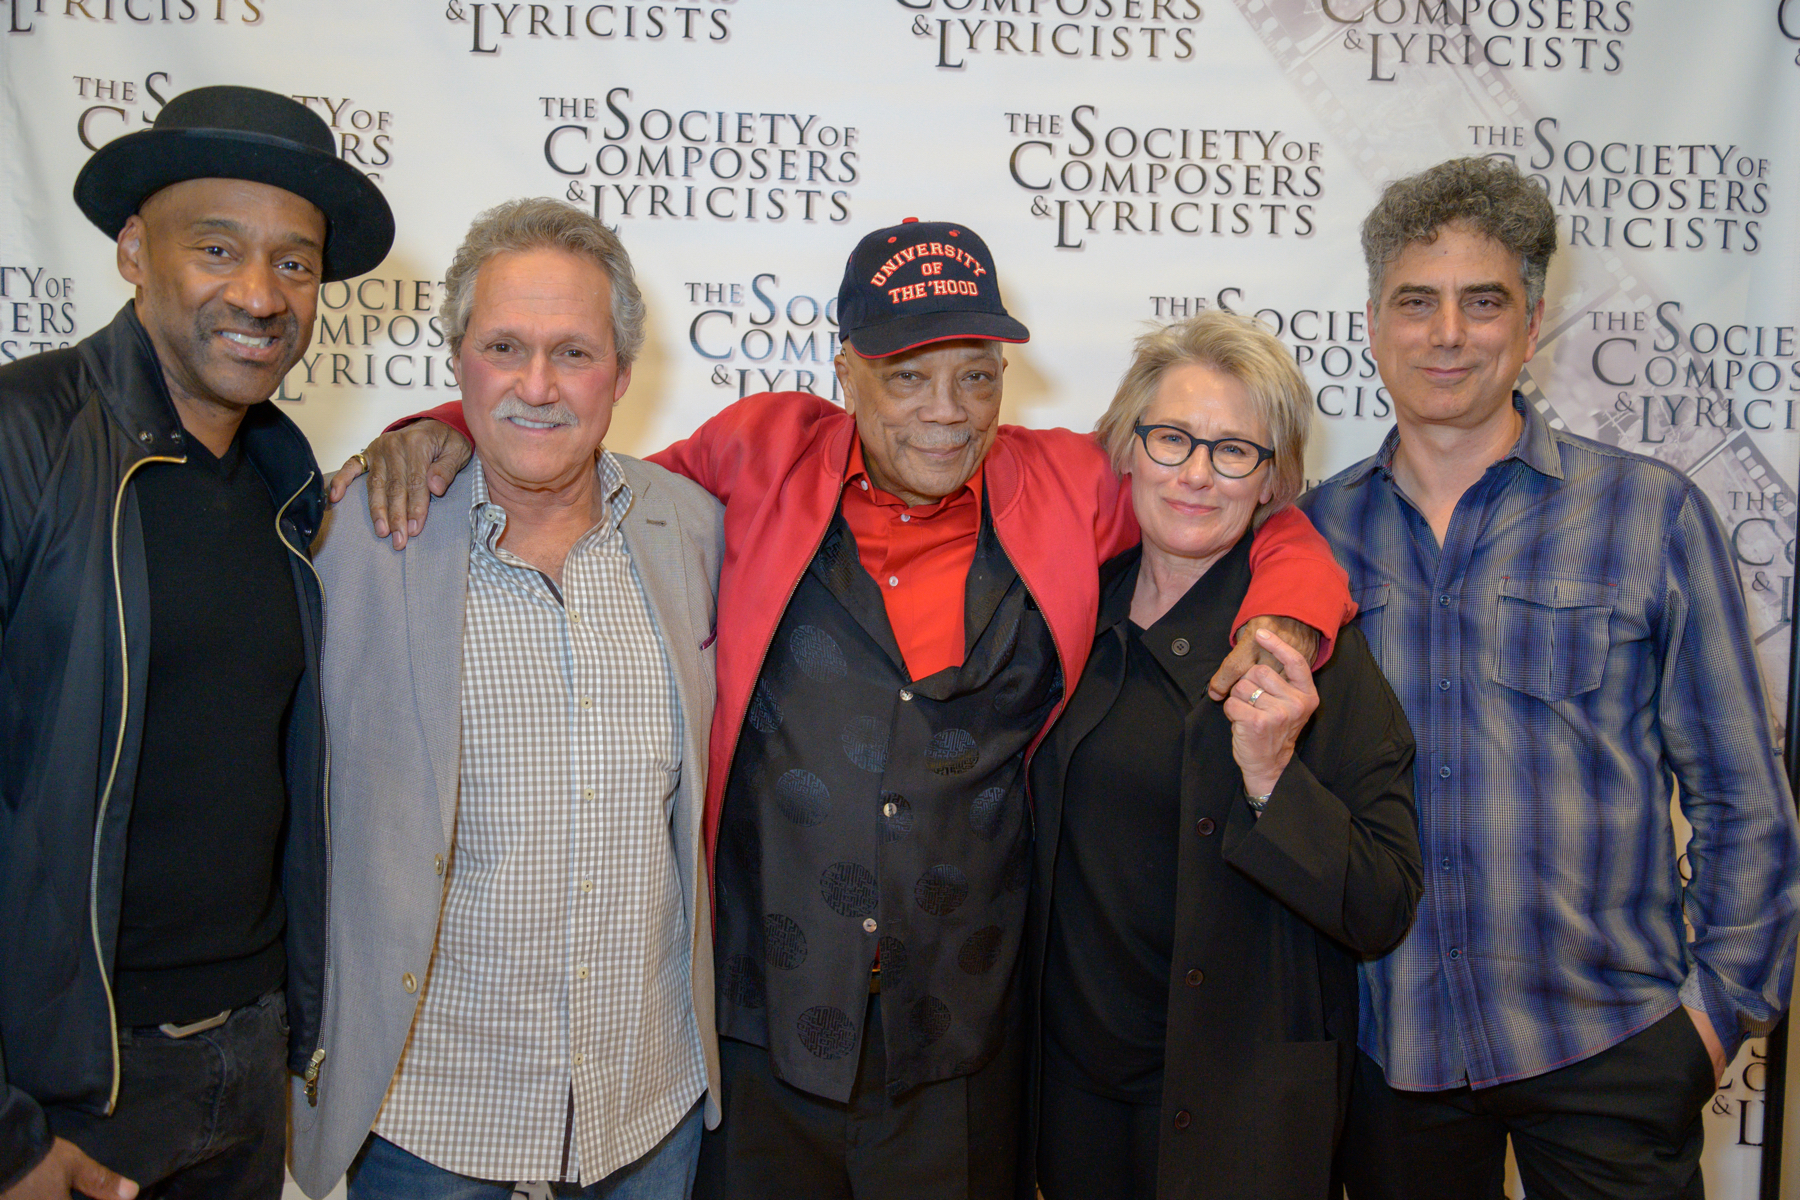 L-R: Marcus Miller (in the film), Joel Sill (Exec. Music Consultant), Quincy Jones (in the film), Barbara Bentree (Director), John Rangel (Producer) at Screening for Society of Composers and lyricists in Los Angeles